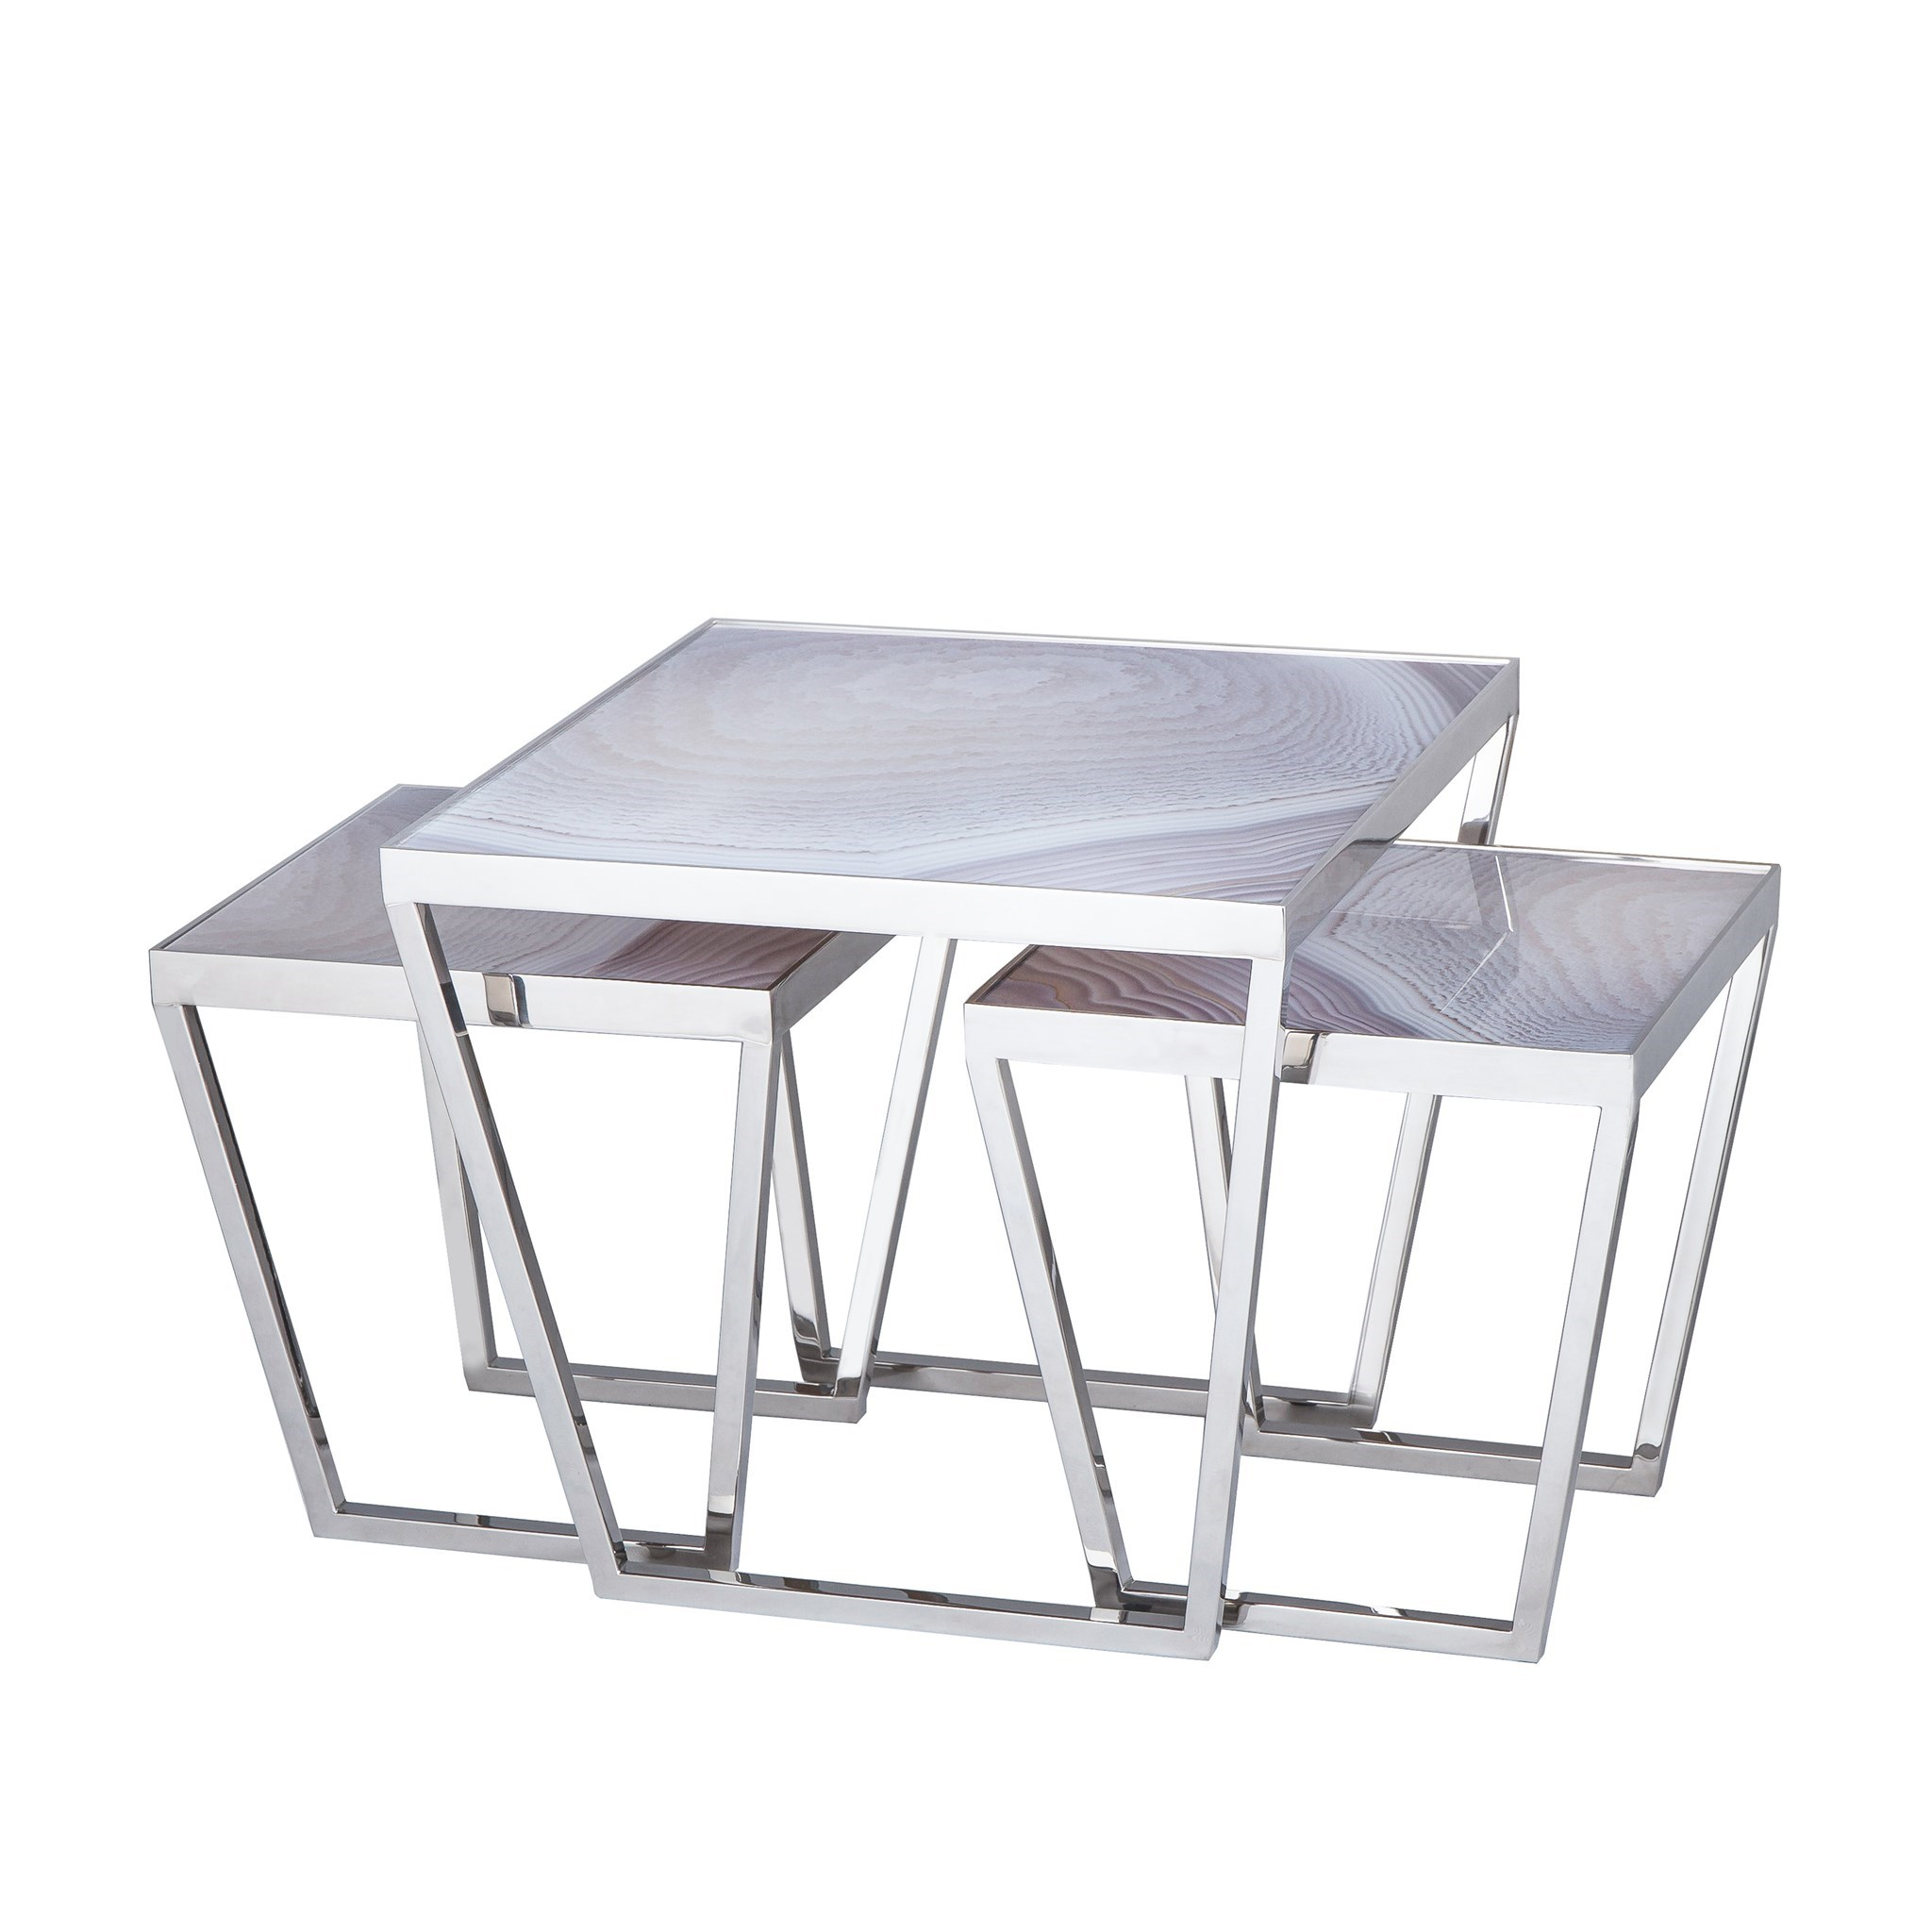 jaxson bunching coffee table natural agate tables glass accent sonder living cordless lamps for room kitchen cupboards designer and chairs round wood nesting outdoor bunnings